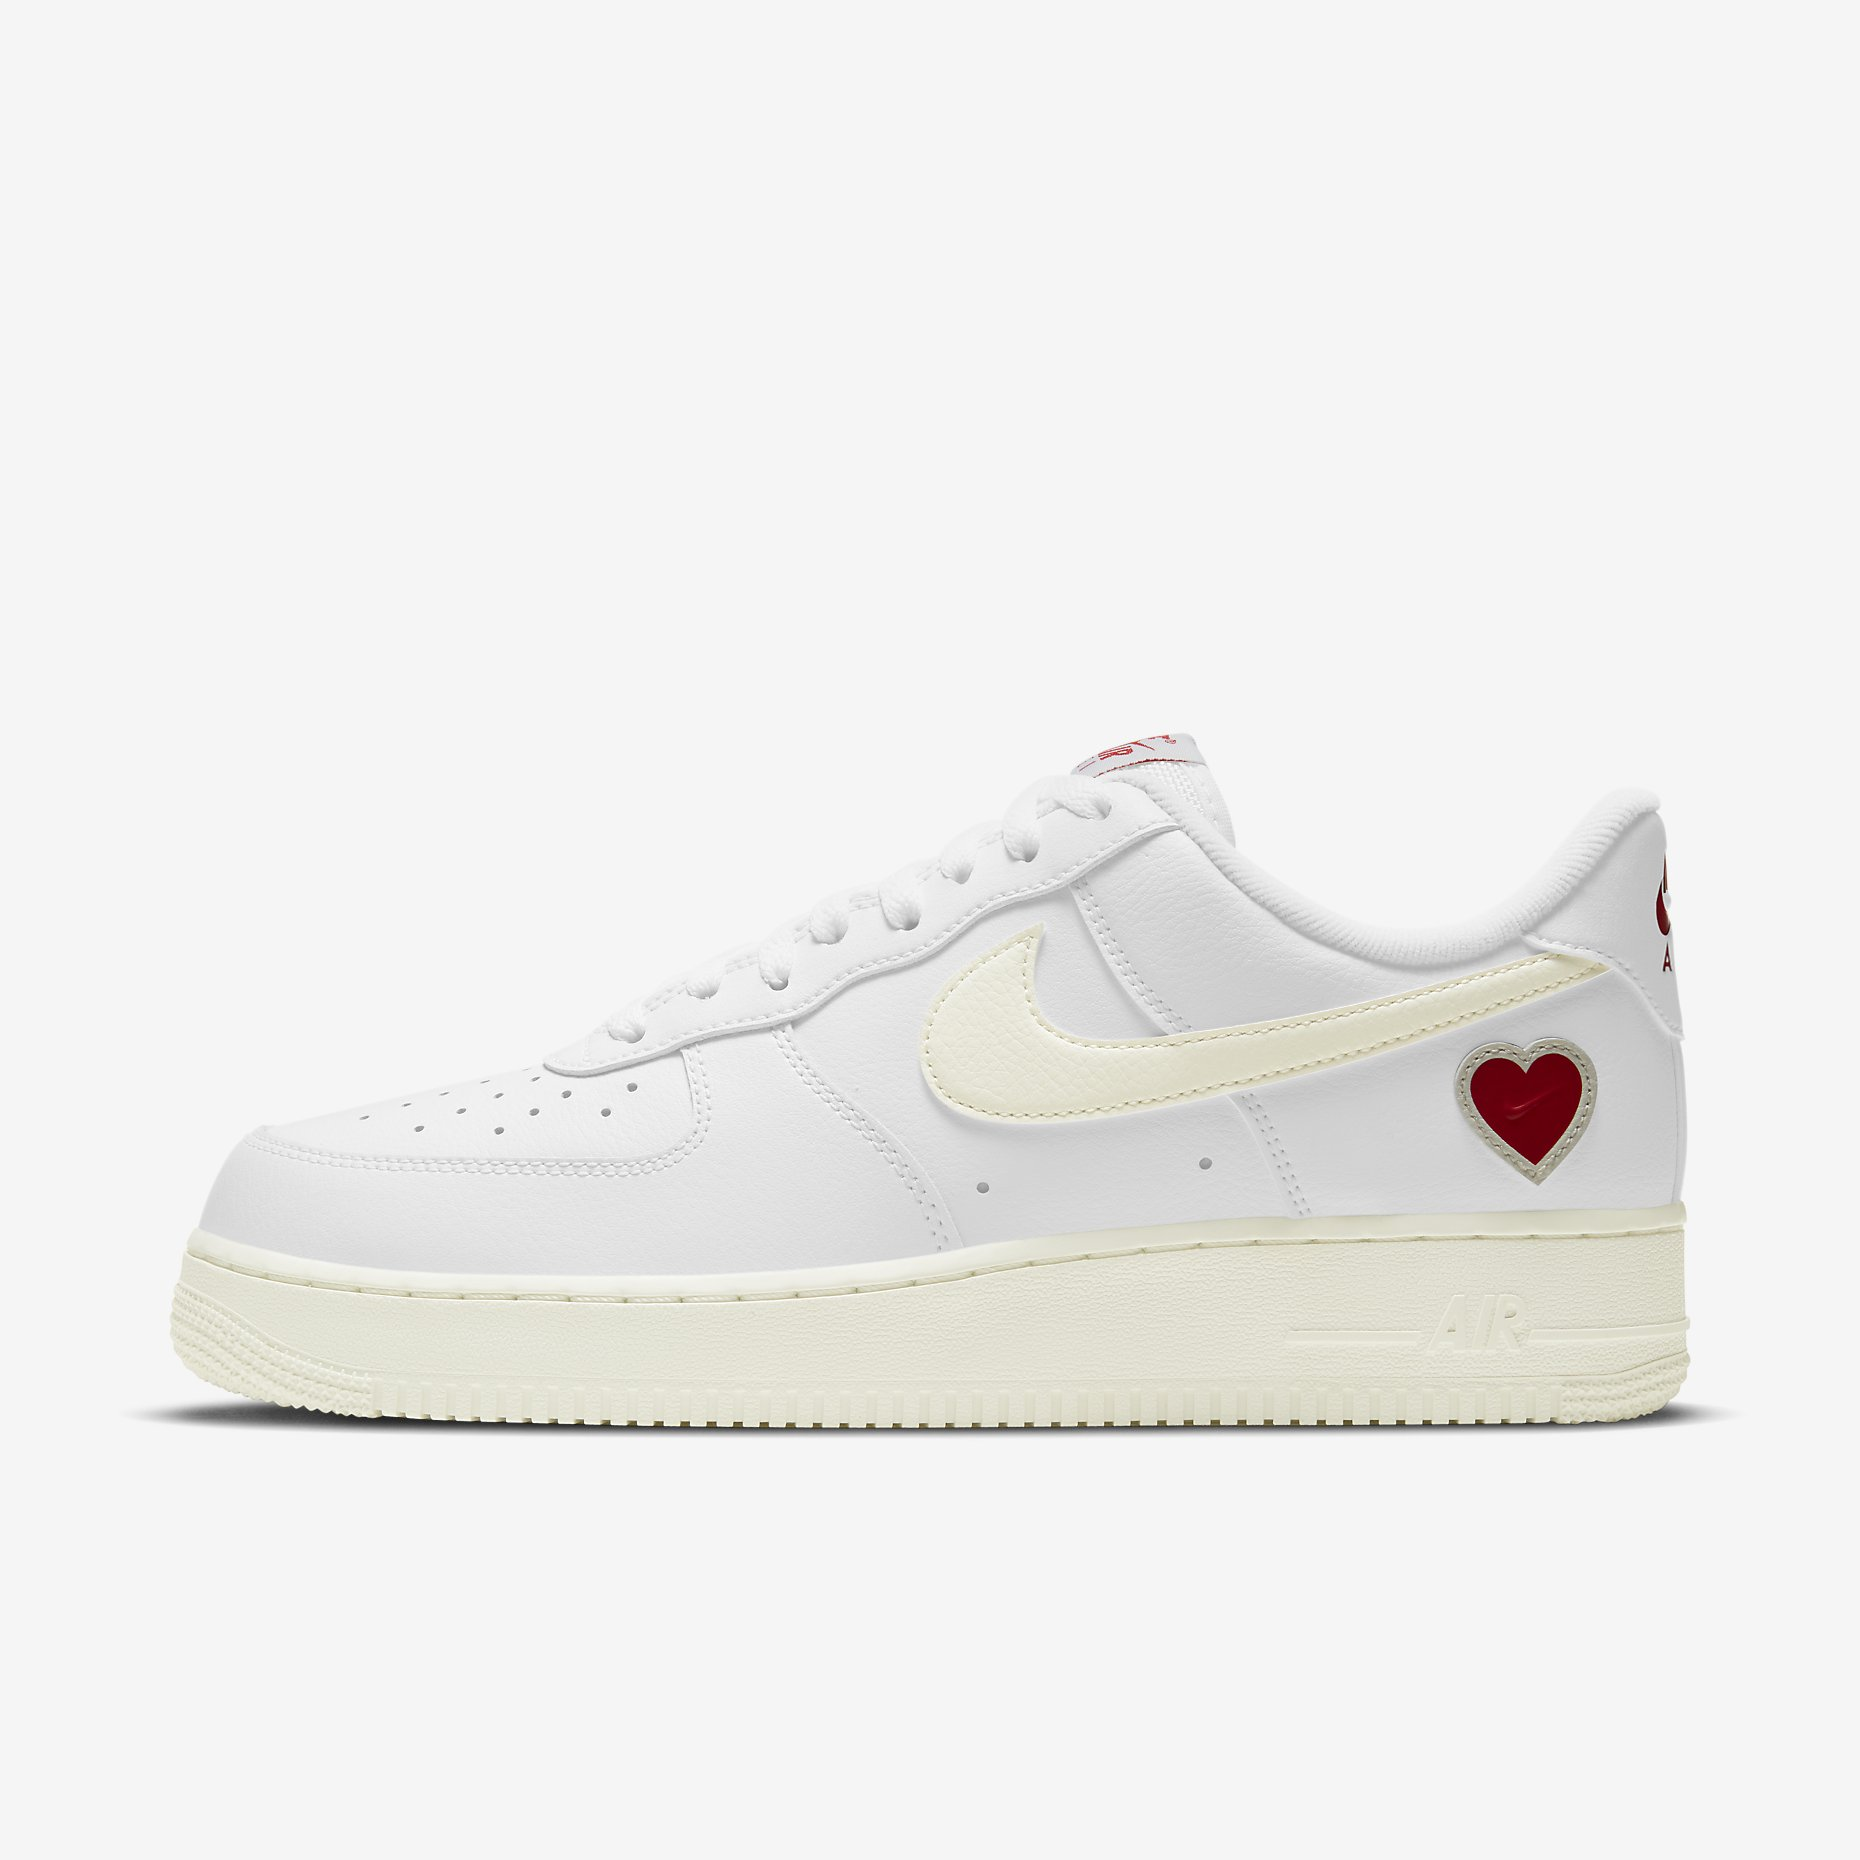 Nike Air Force 1 'Valentine's Day' 2021}